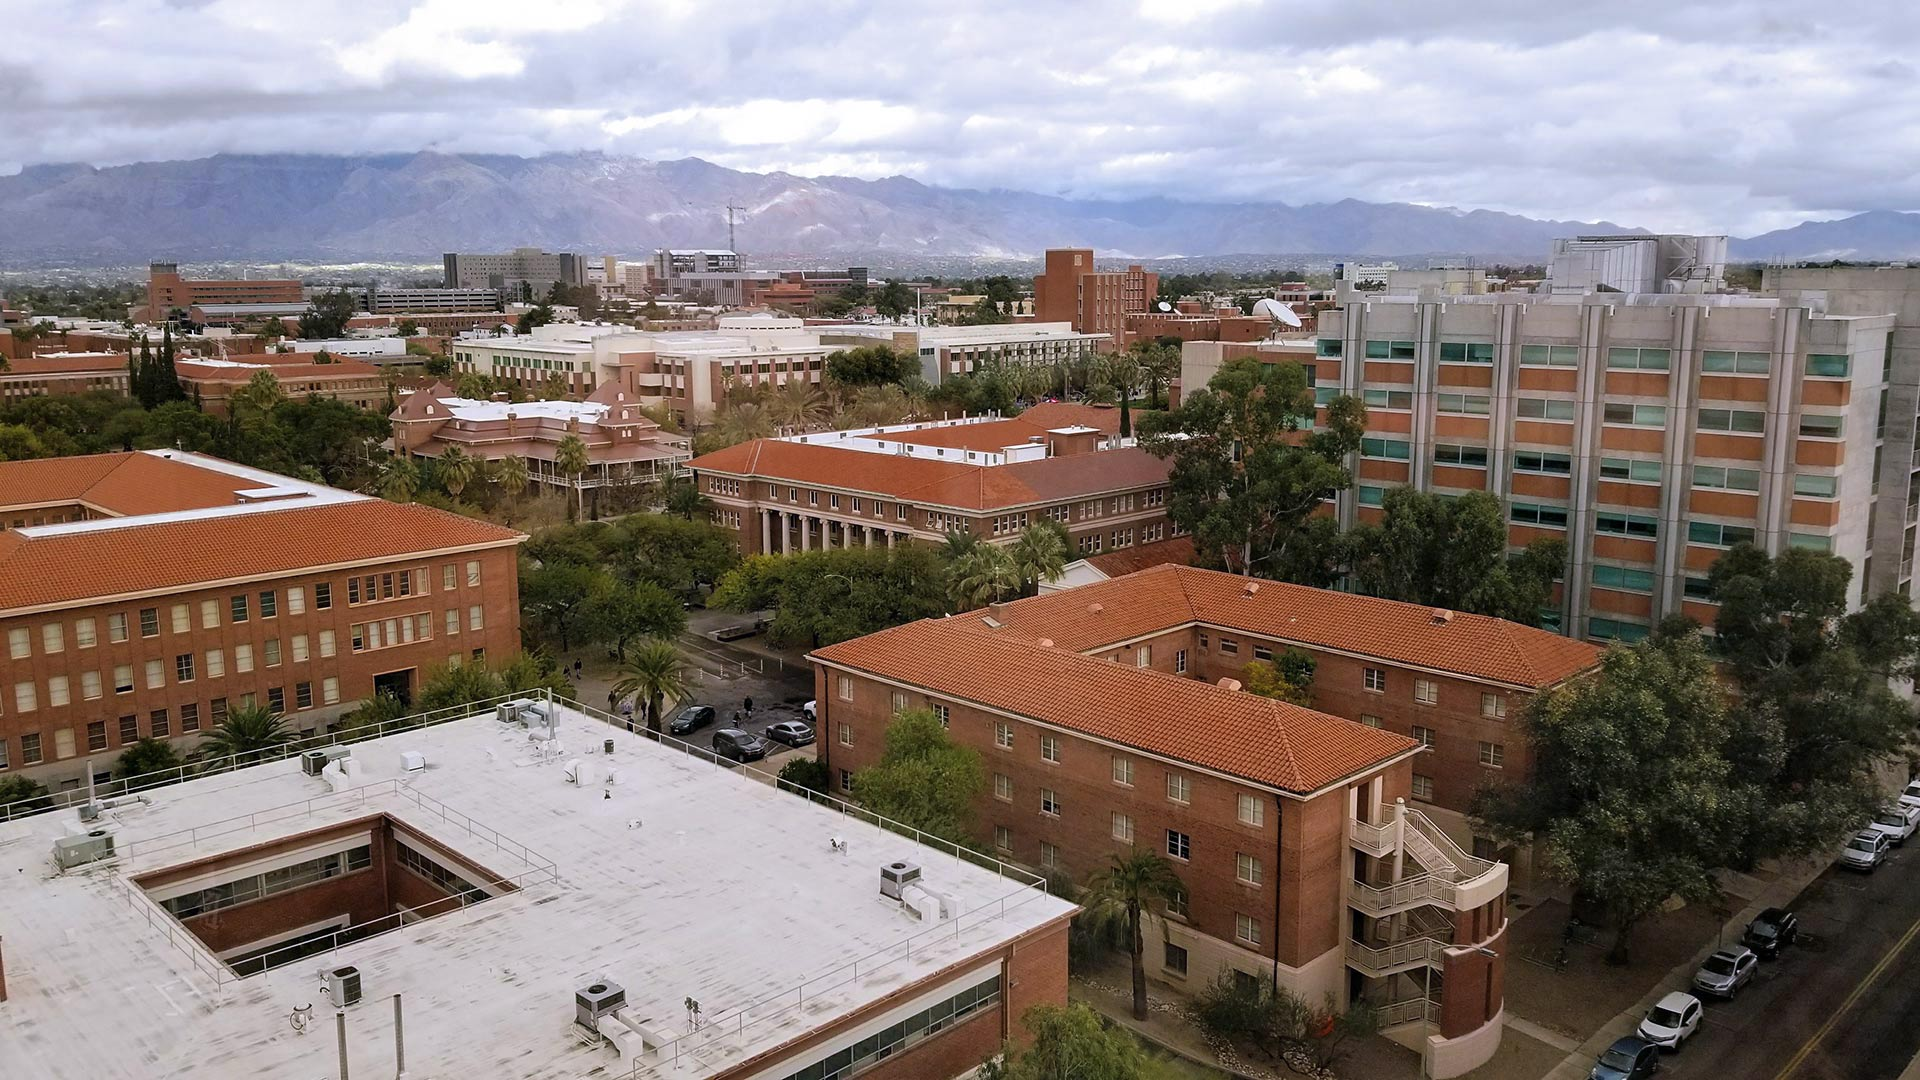 Looking across the University of Arizona campus towards the Catalina Mountains.